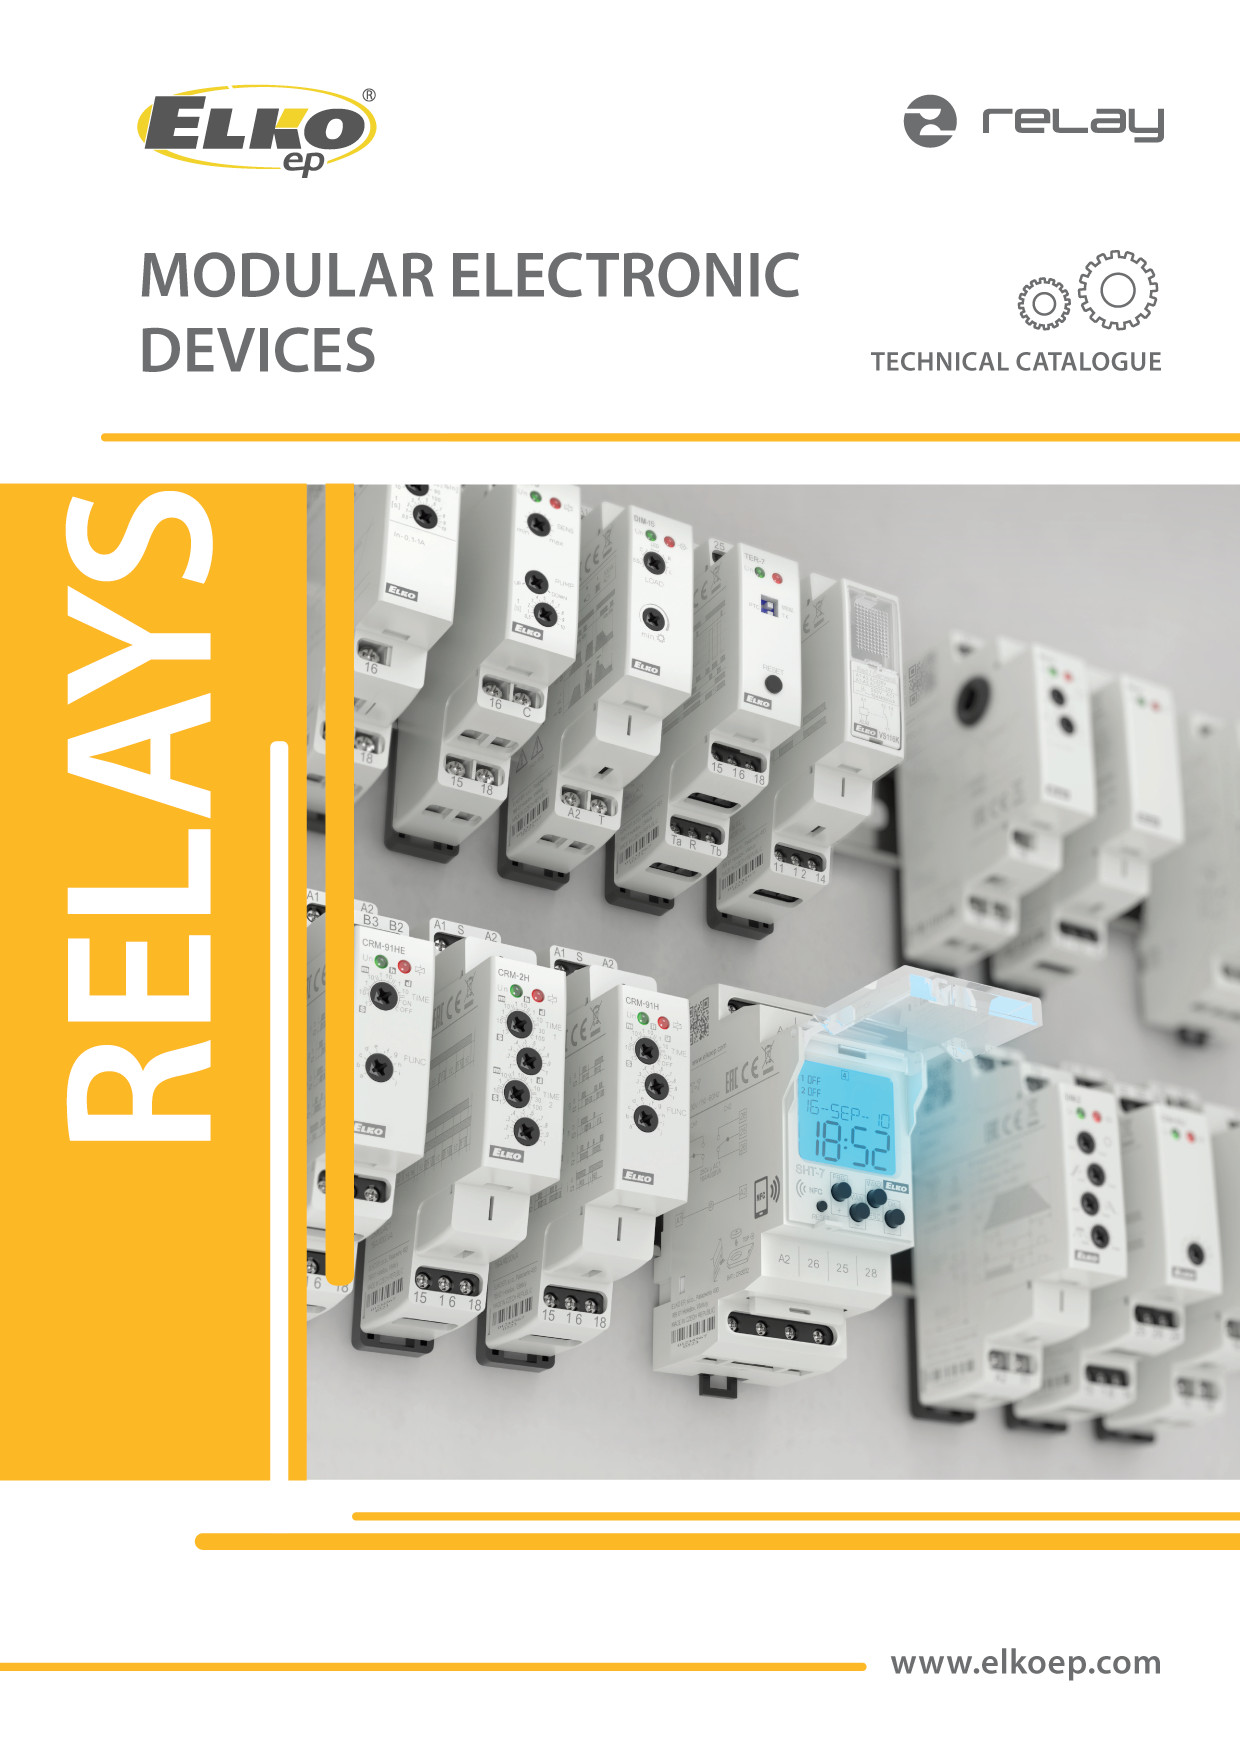 Modular electronic devices preview